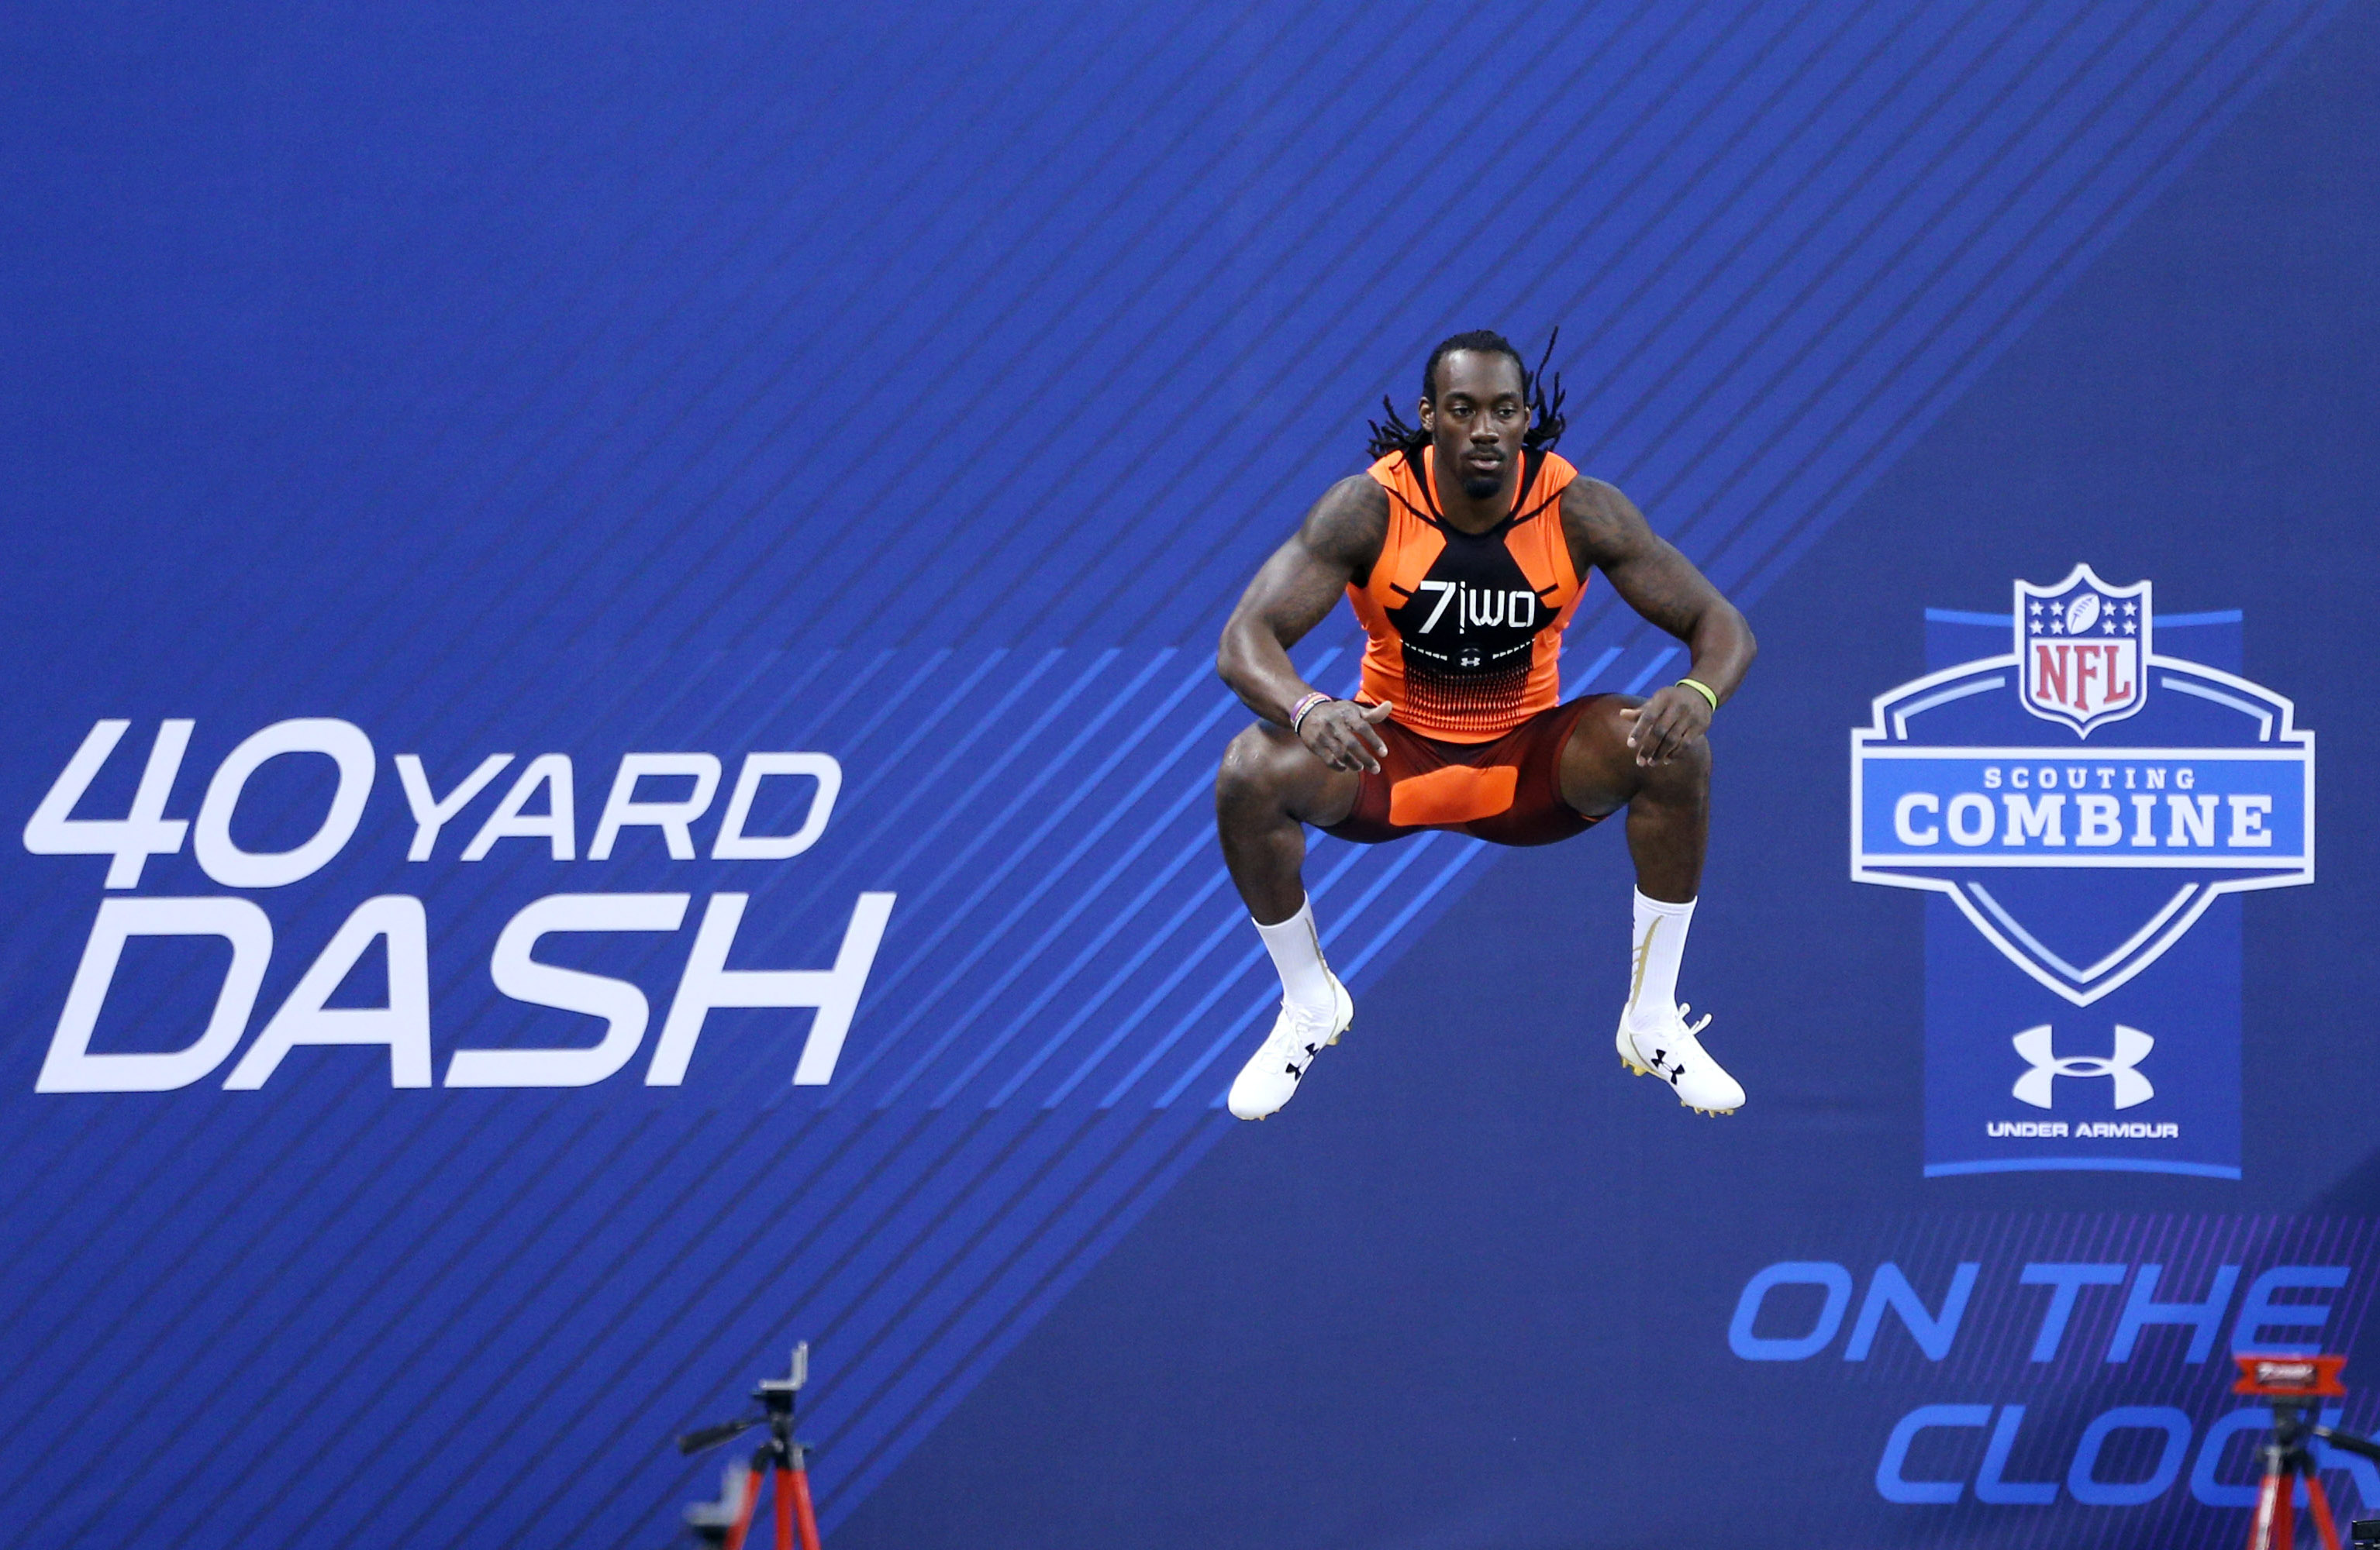 Sammie Coates prepares to run the 40-yard dash at the NFL scouting combine.  (Brian Spurlock, USA TODAY Sports)